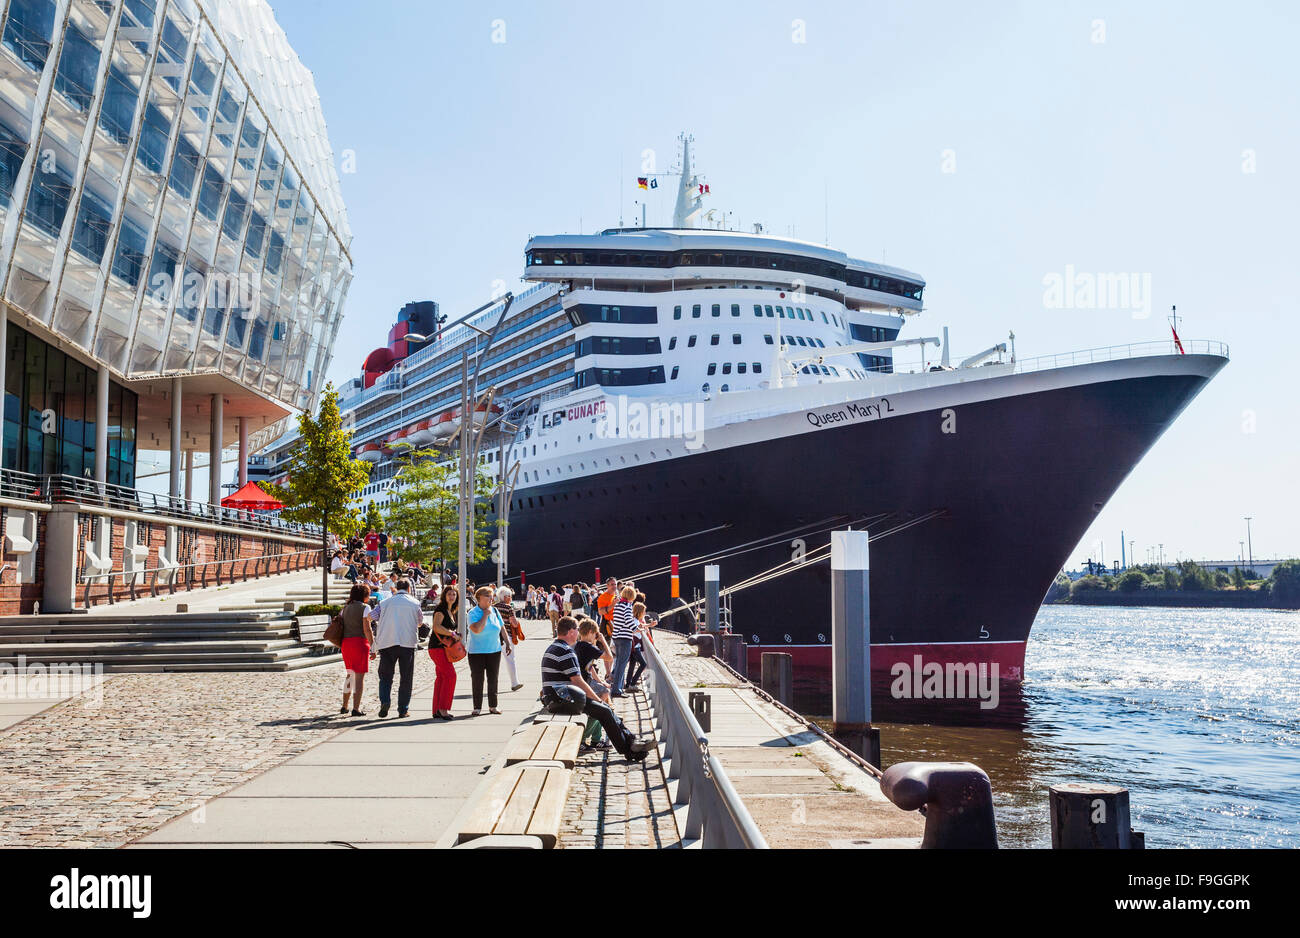 Germany, Free and Hanseatic City of Hamburg, Strandkai at HafenCity, Cunard Liner Queen Mary II, at the Hamburg - Stock Image